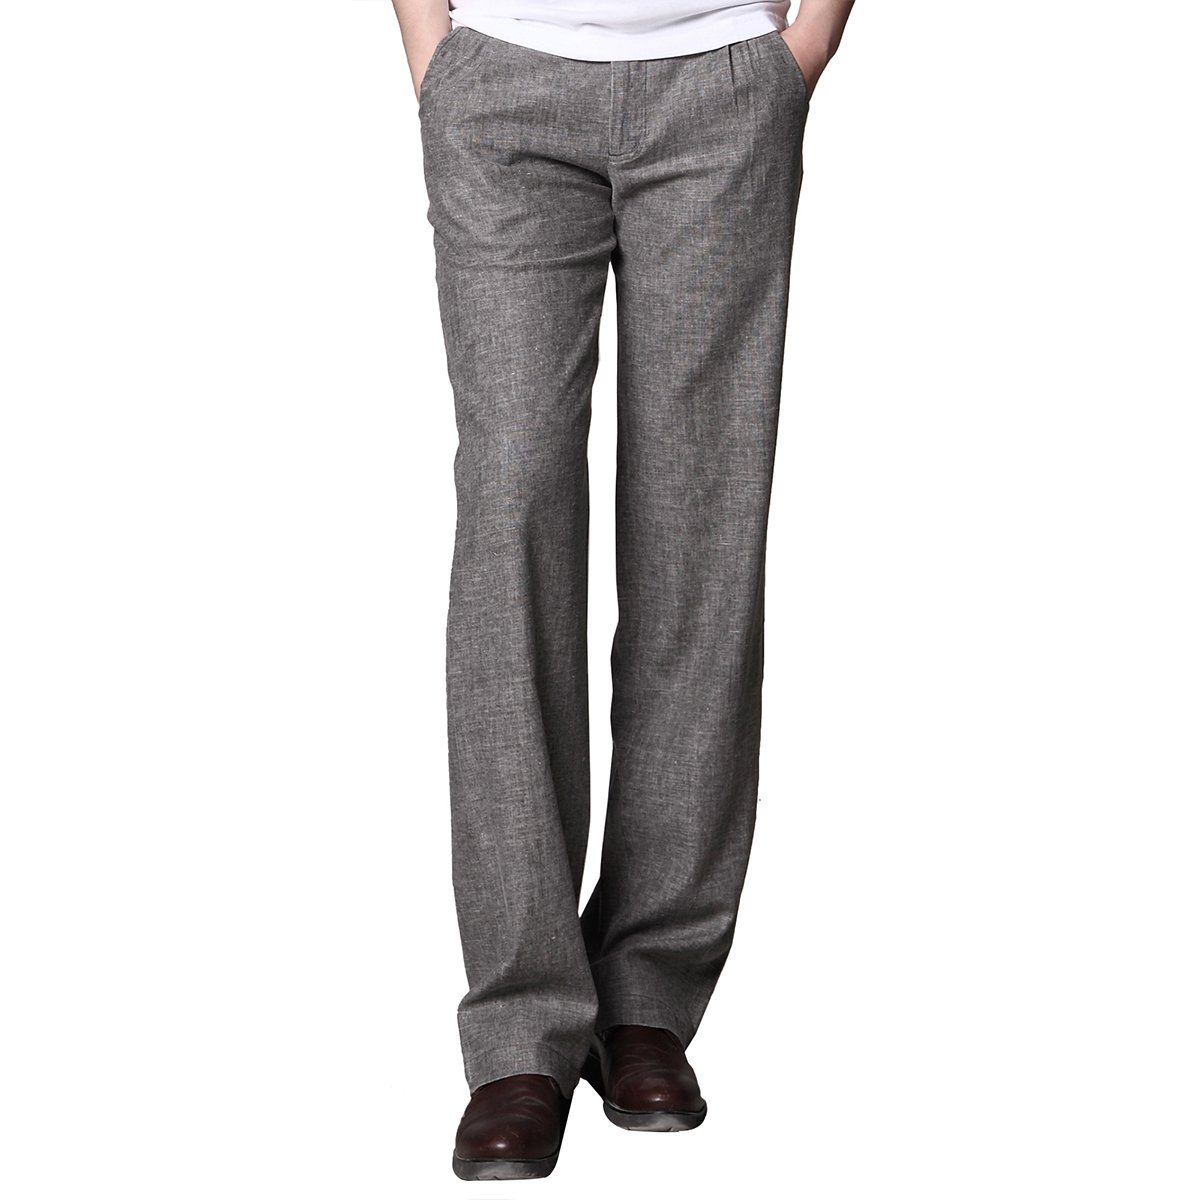 MARKLESS Men Summer Thin Straight Linen Pants Casual Commercial Slim Fit Trousers (31W30L, Gray) by MARKLESS